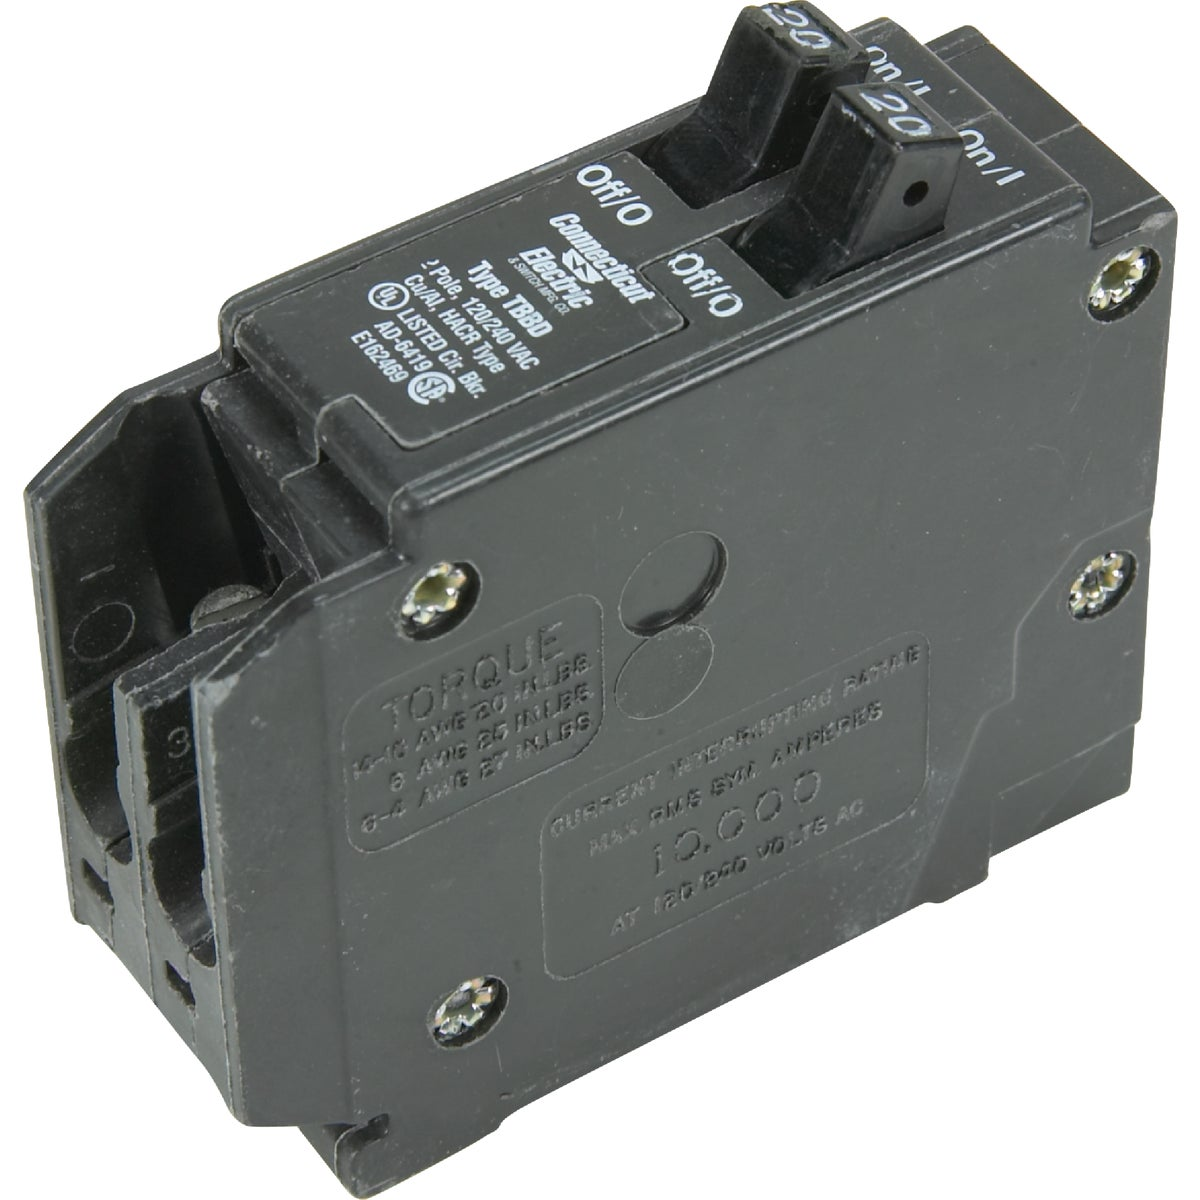 20A TWIN CIRCUIT BREAKER - ICBQ2020 by Connecticut Electric